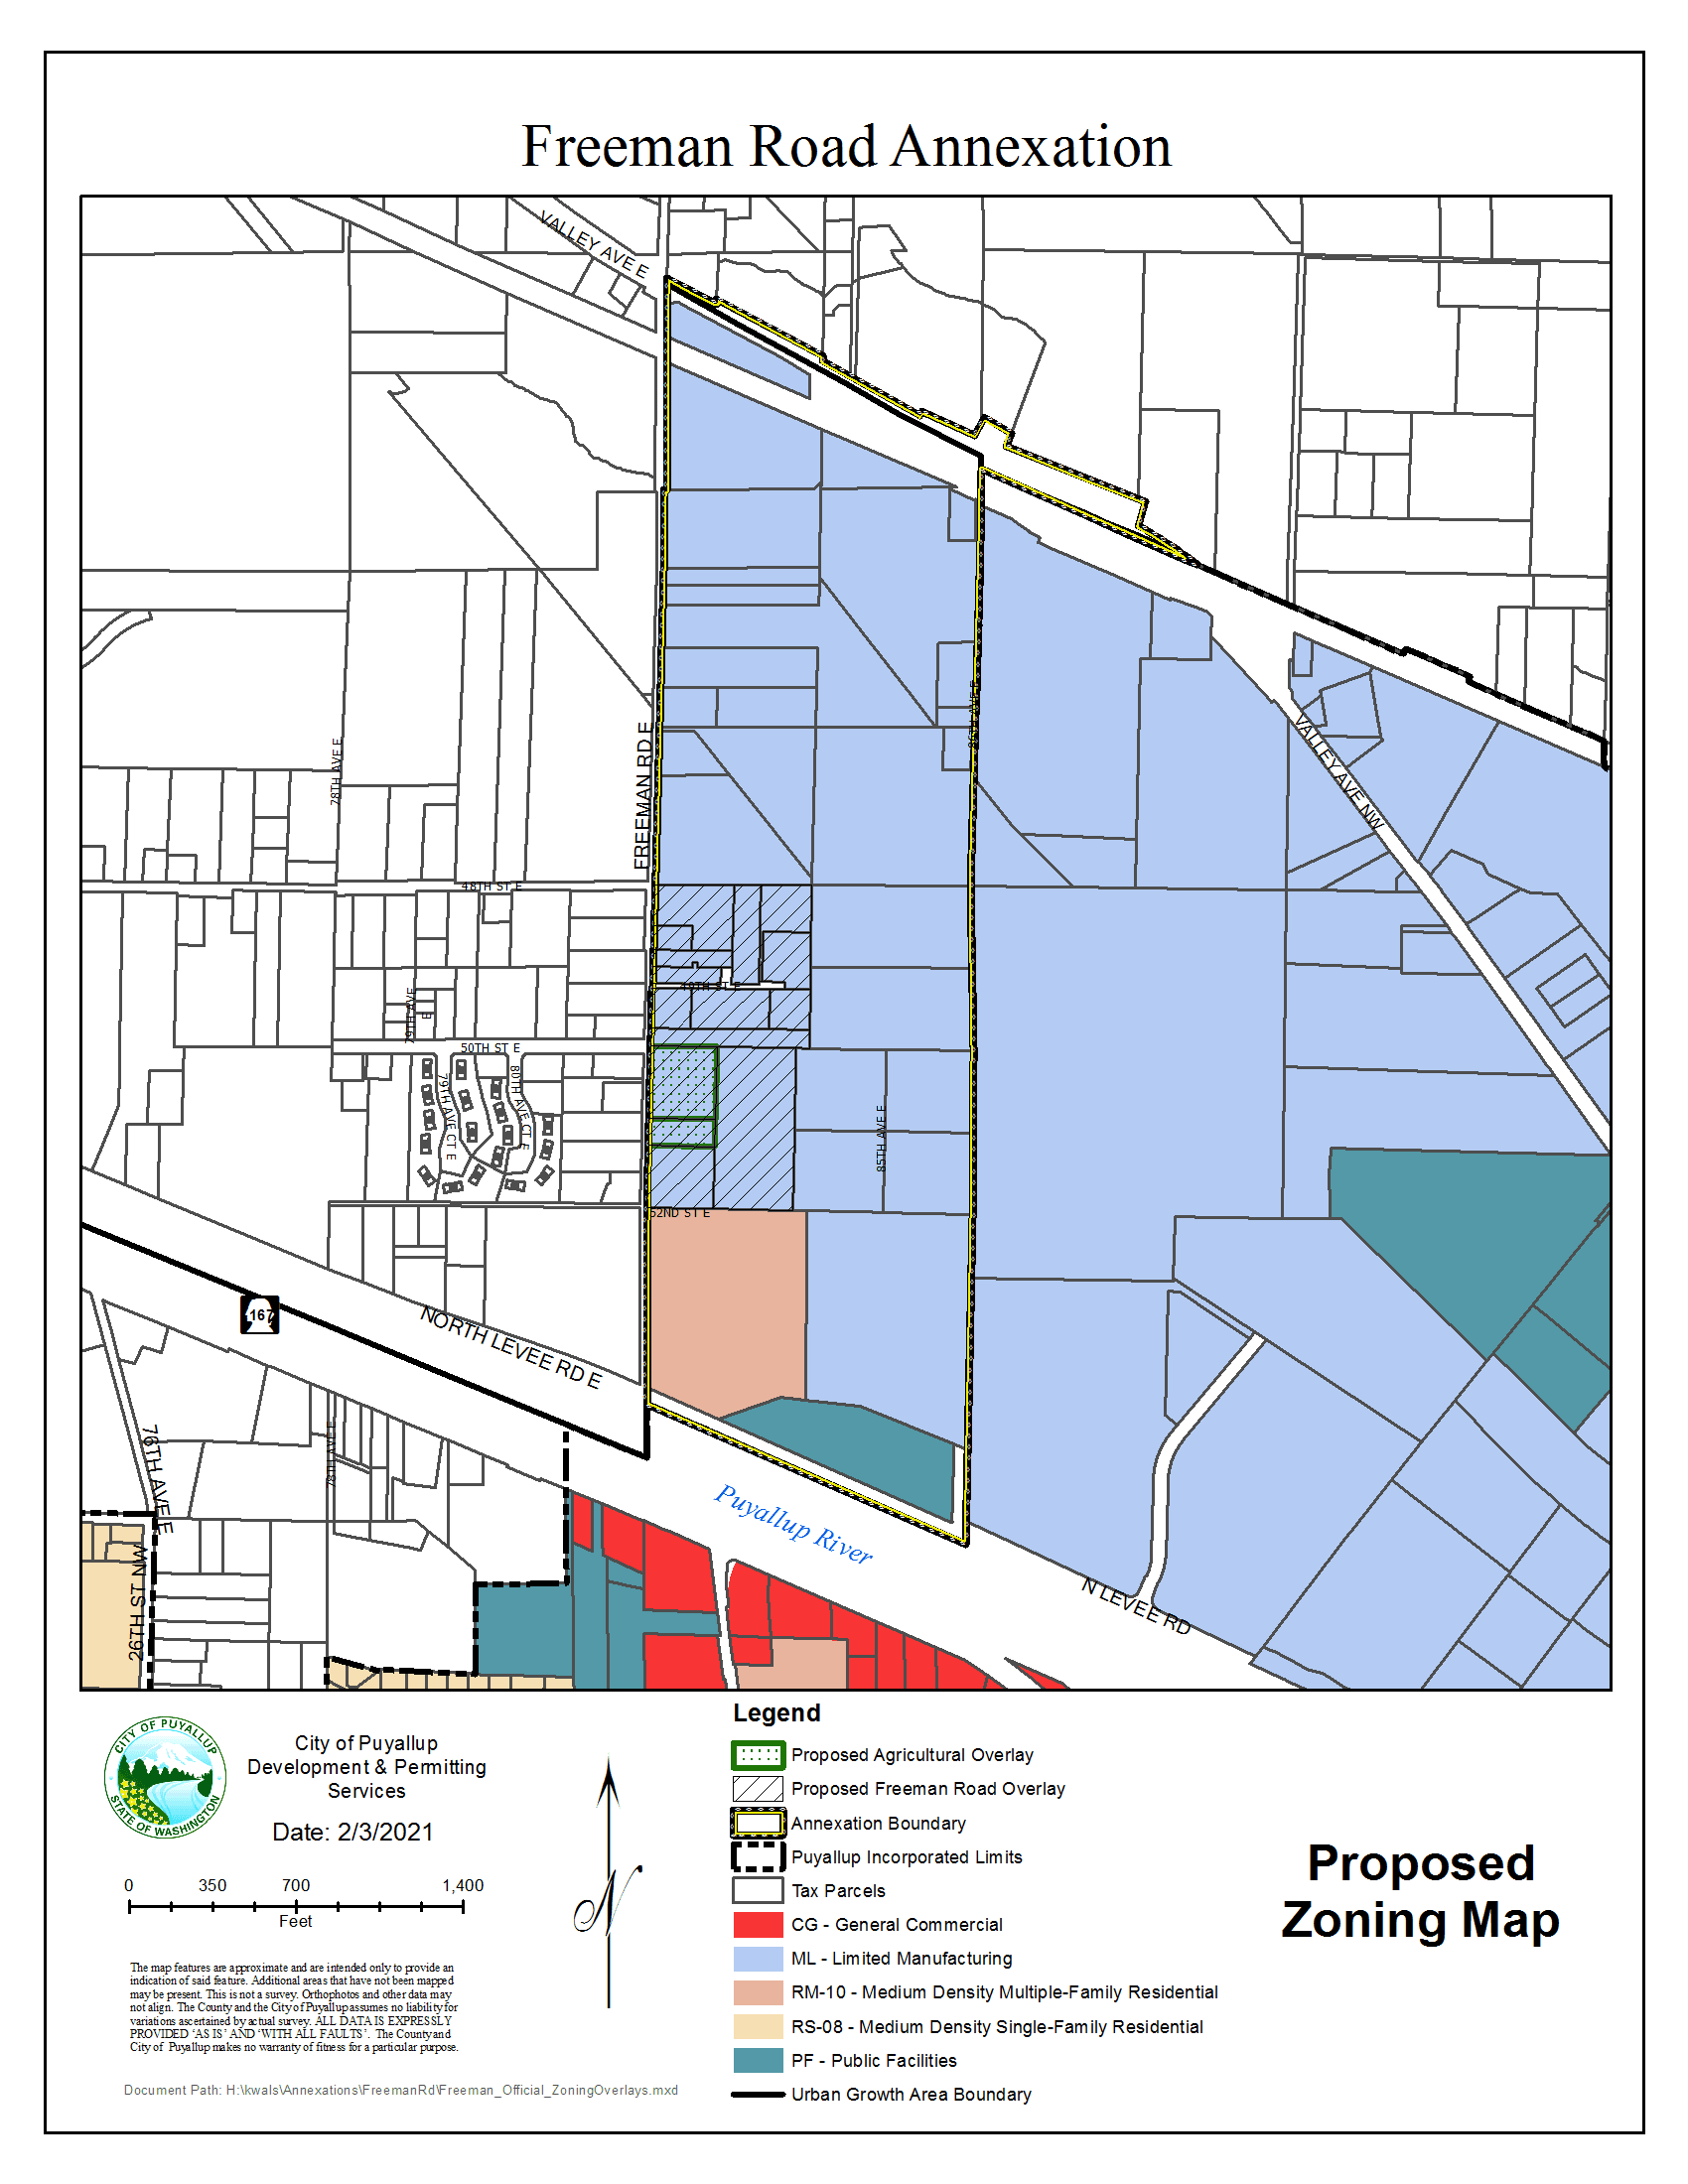 Freeman_Proposed Zoning_with overlays